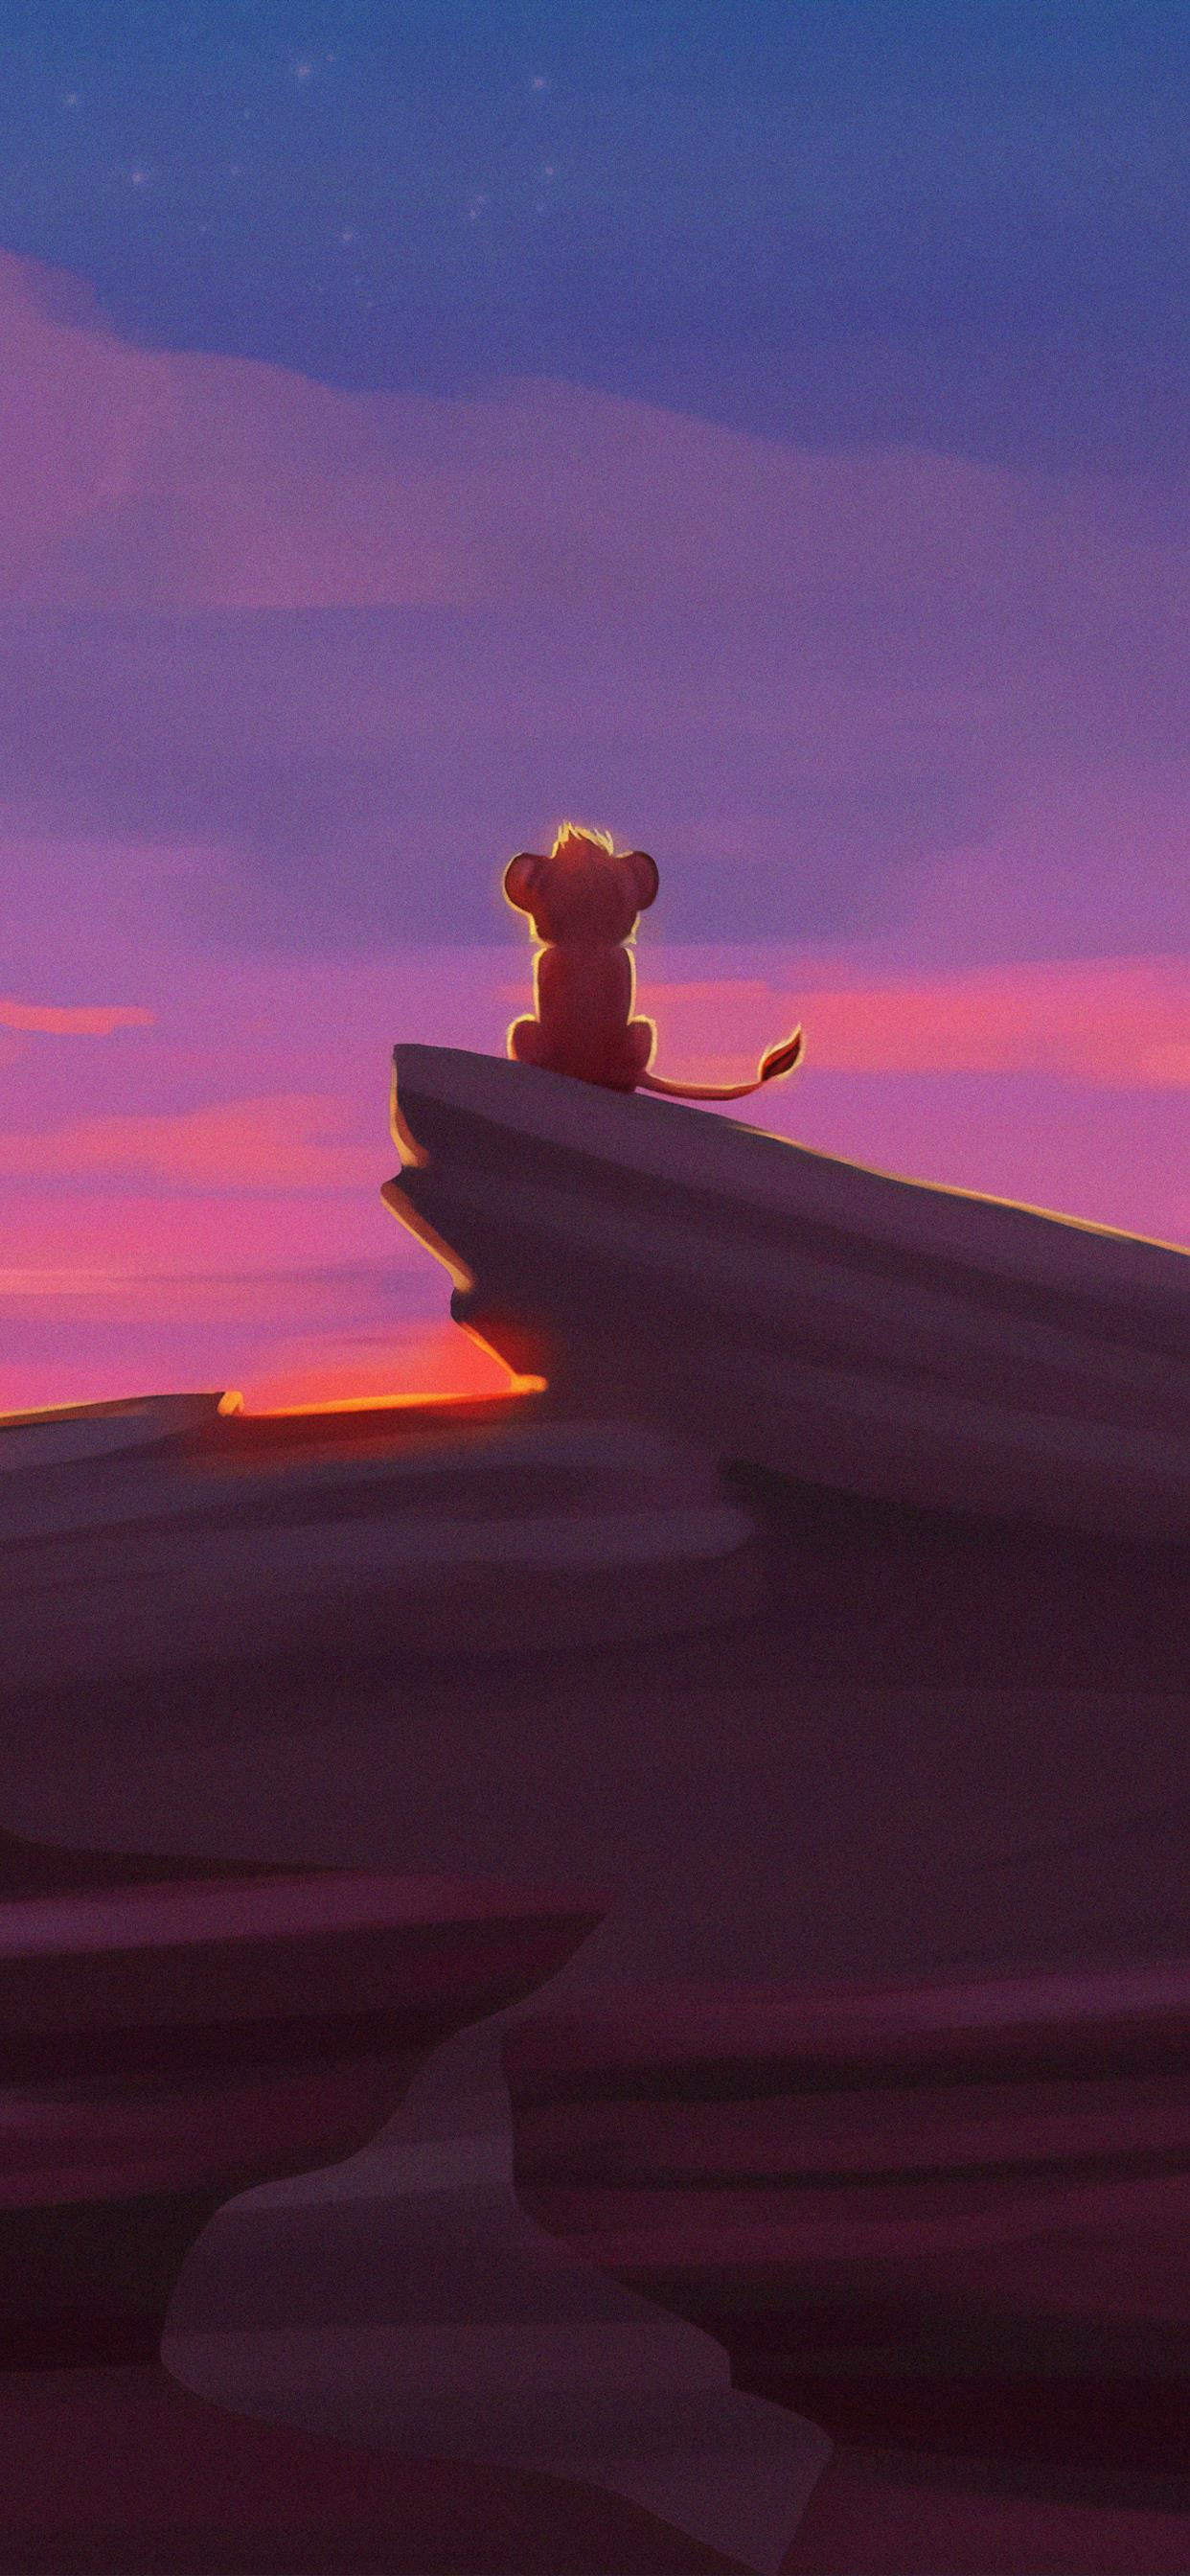 157 1570704 lion king wallpapers iphone